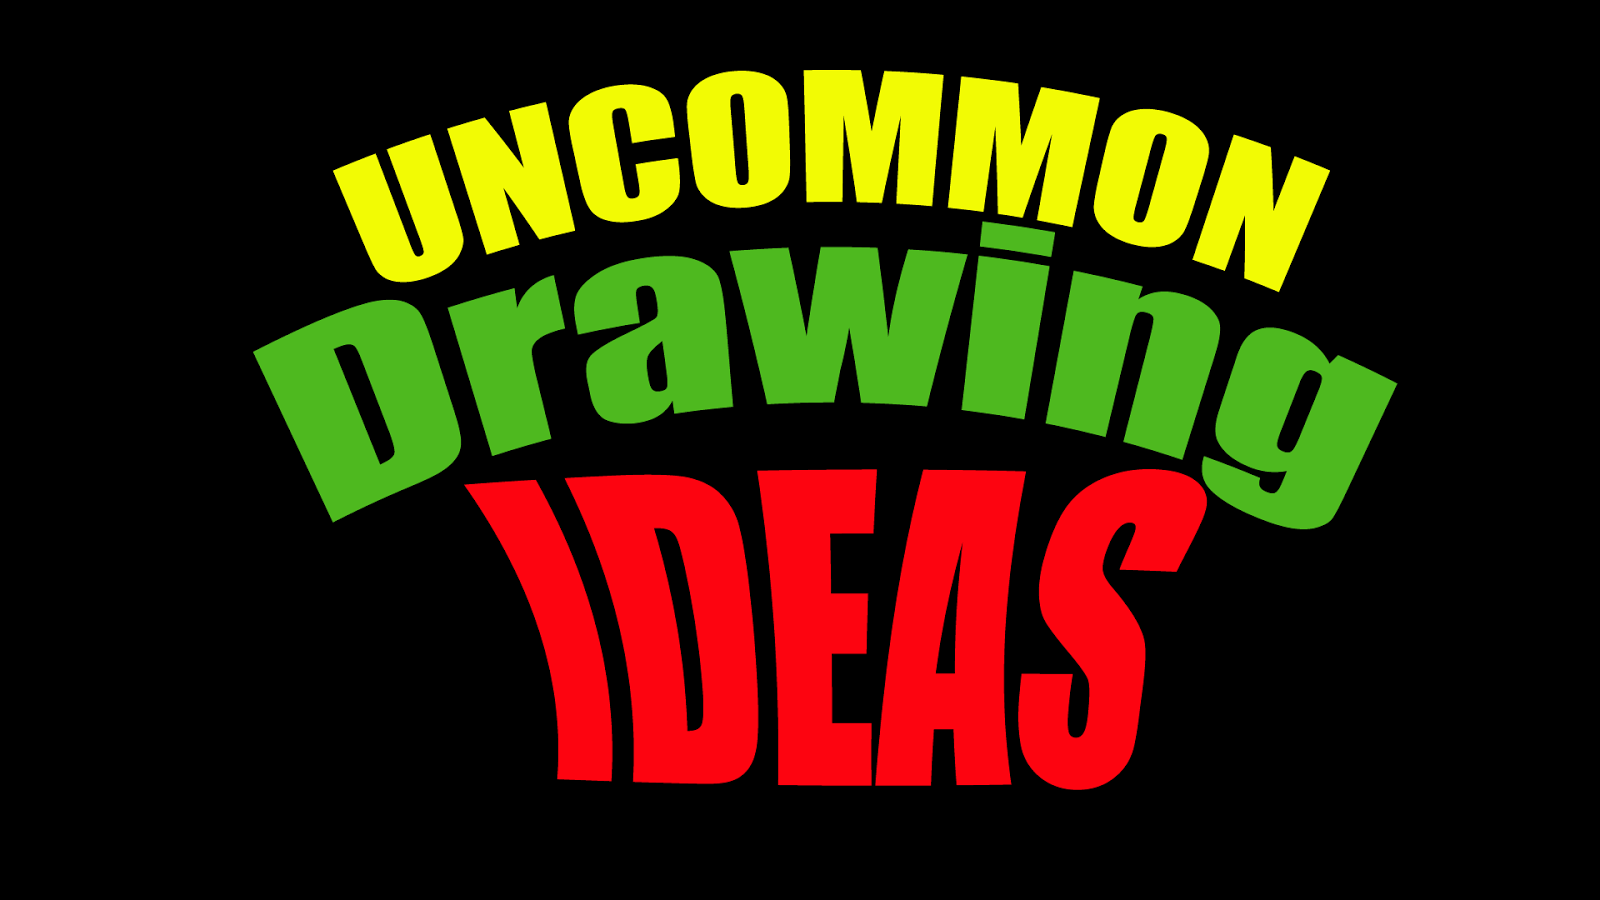 Drawing Ideas for Kids : 167 WEIRD drawing IDEAS Students ...